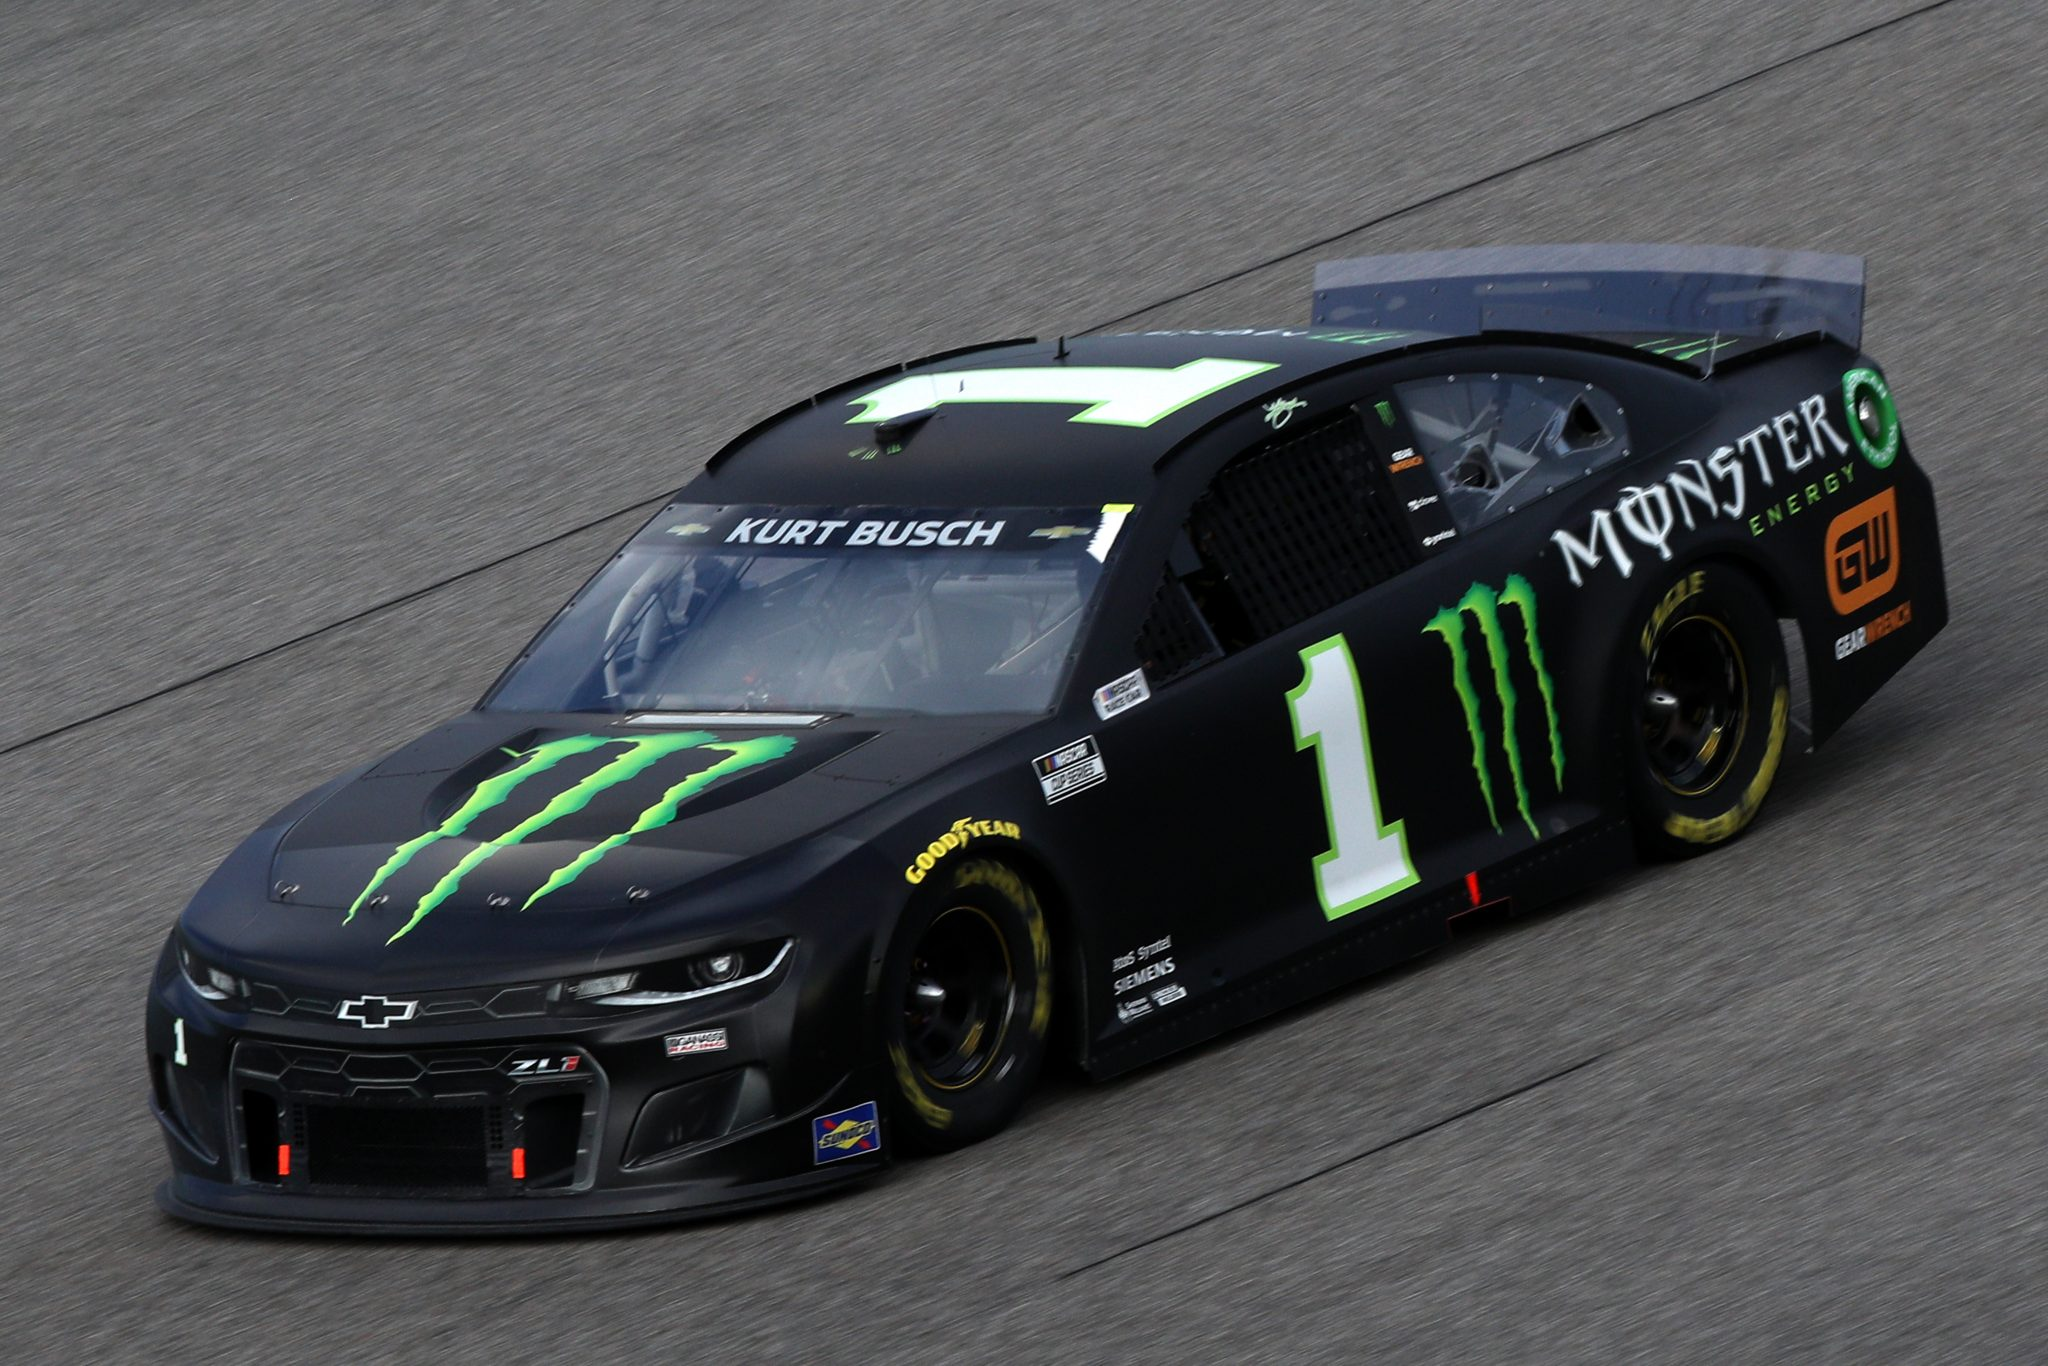 HOMESTEAD, FLORIDA - FEBRUARY 28: Kurt Busch, driver of the #1 Monster Energy Chevrolet, drives during the NASCAR Cup Series Dixie Vodka 400 at Homestead-Miami Speedway on February 28, 2021 in Homestead, Florida. (Photo by Sean Gardner/Getty Images) | Getty Images